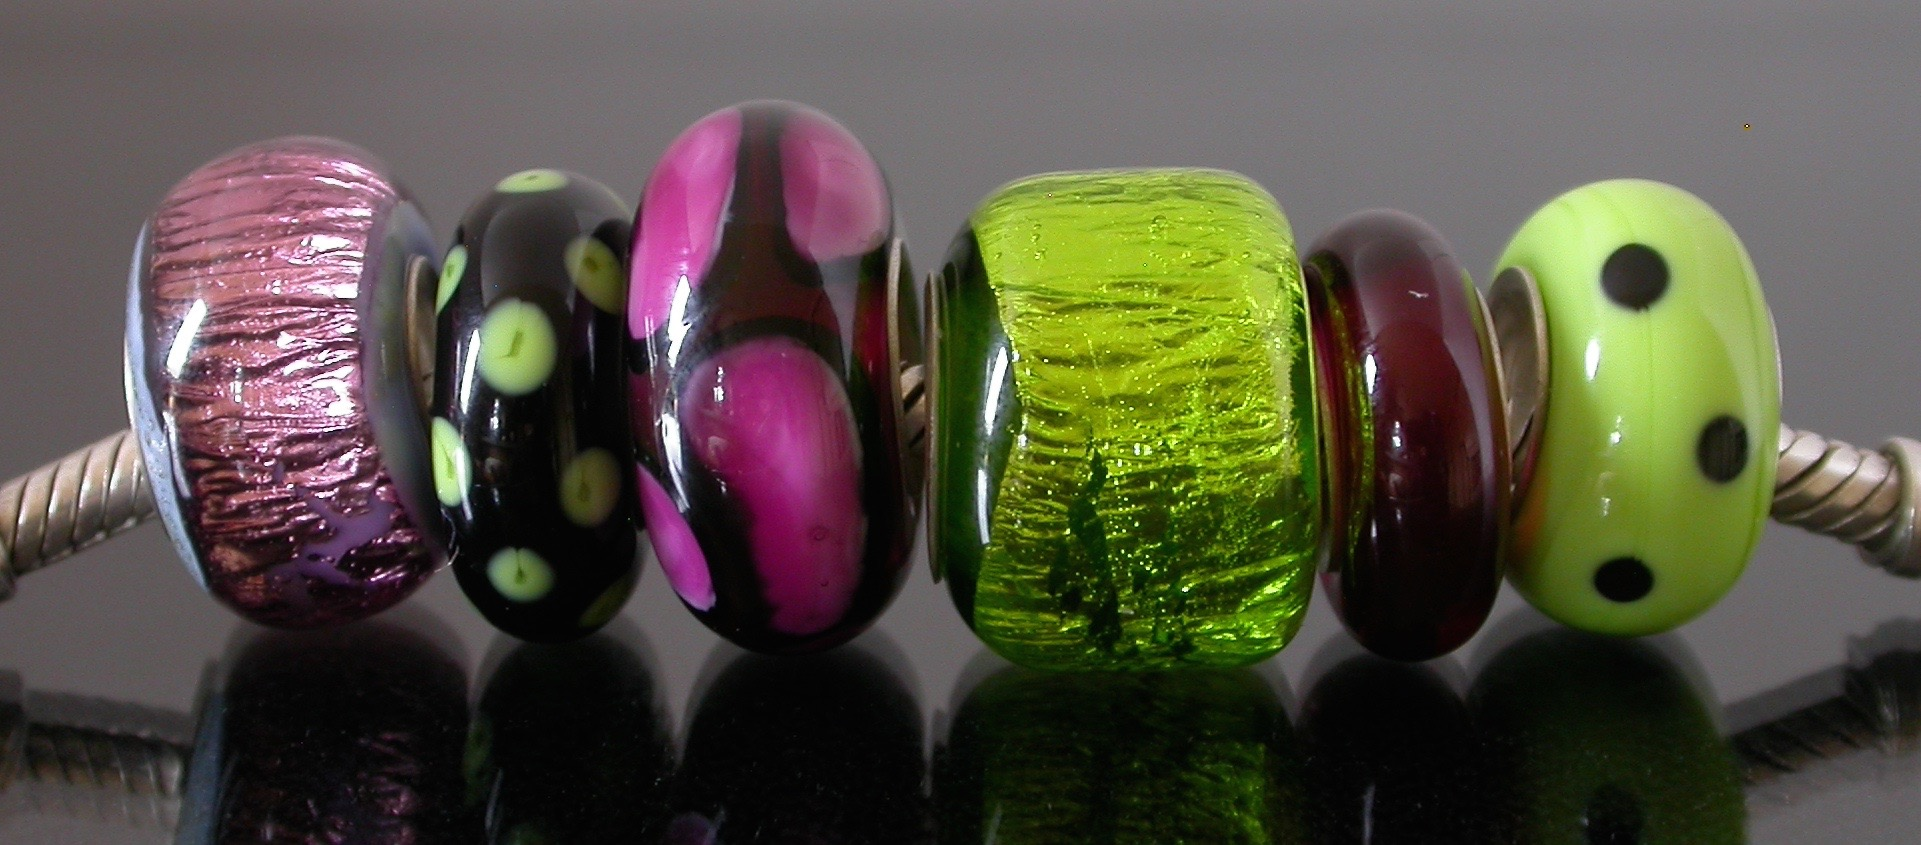 Large hole beads in various designs.